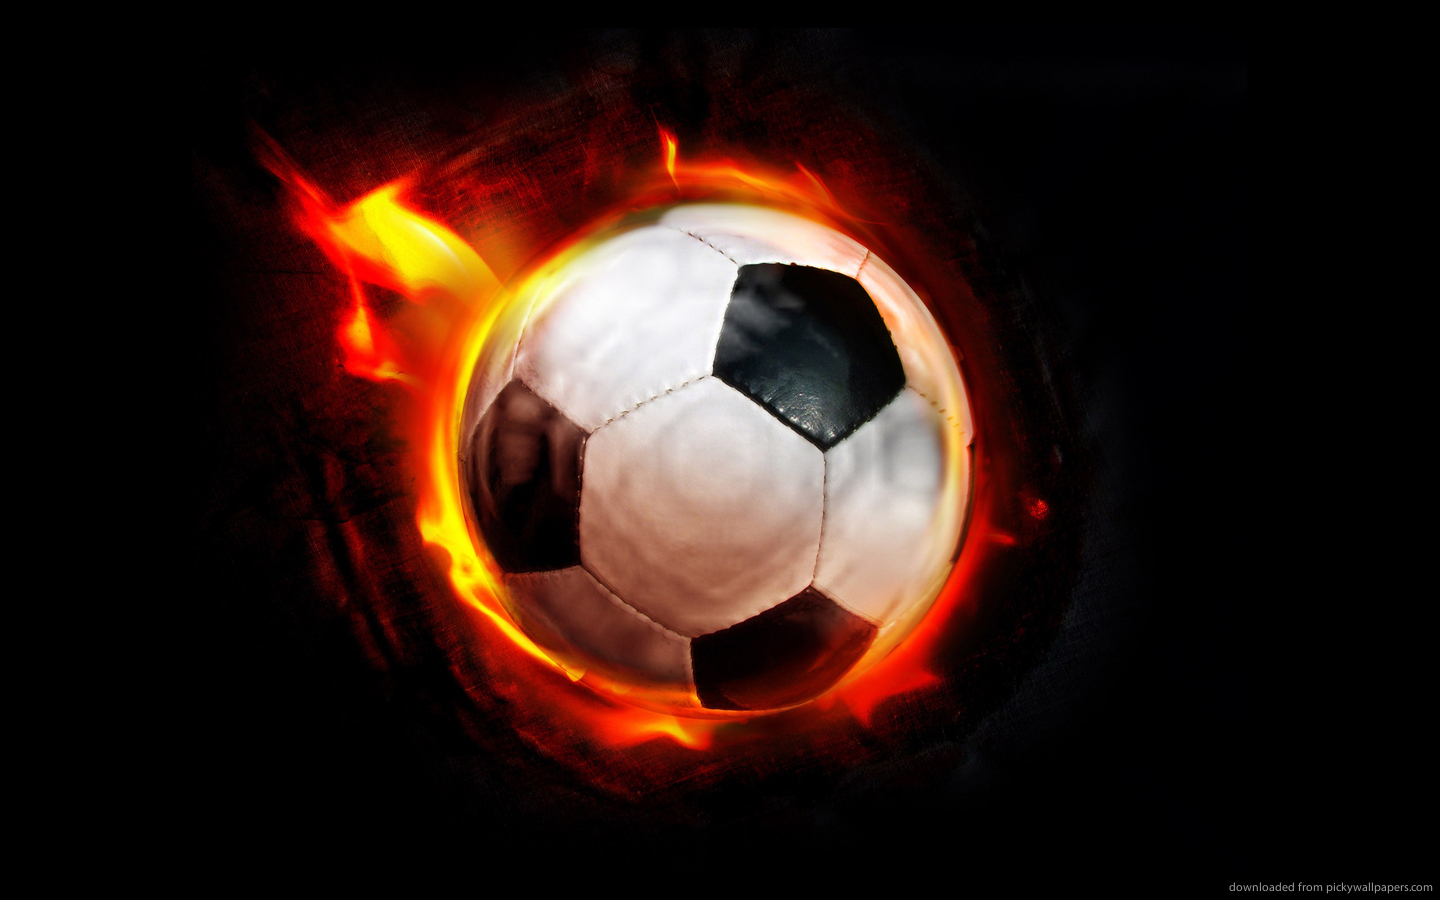 Download 1440x900 Burning Soccer Ball Wallpaper 1440x900